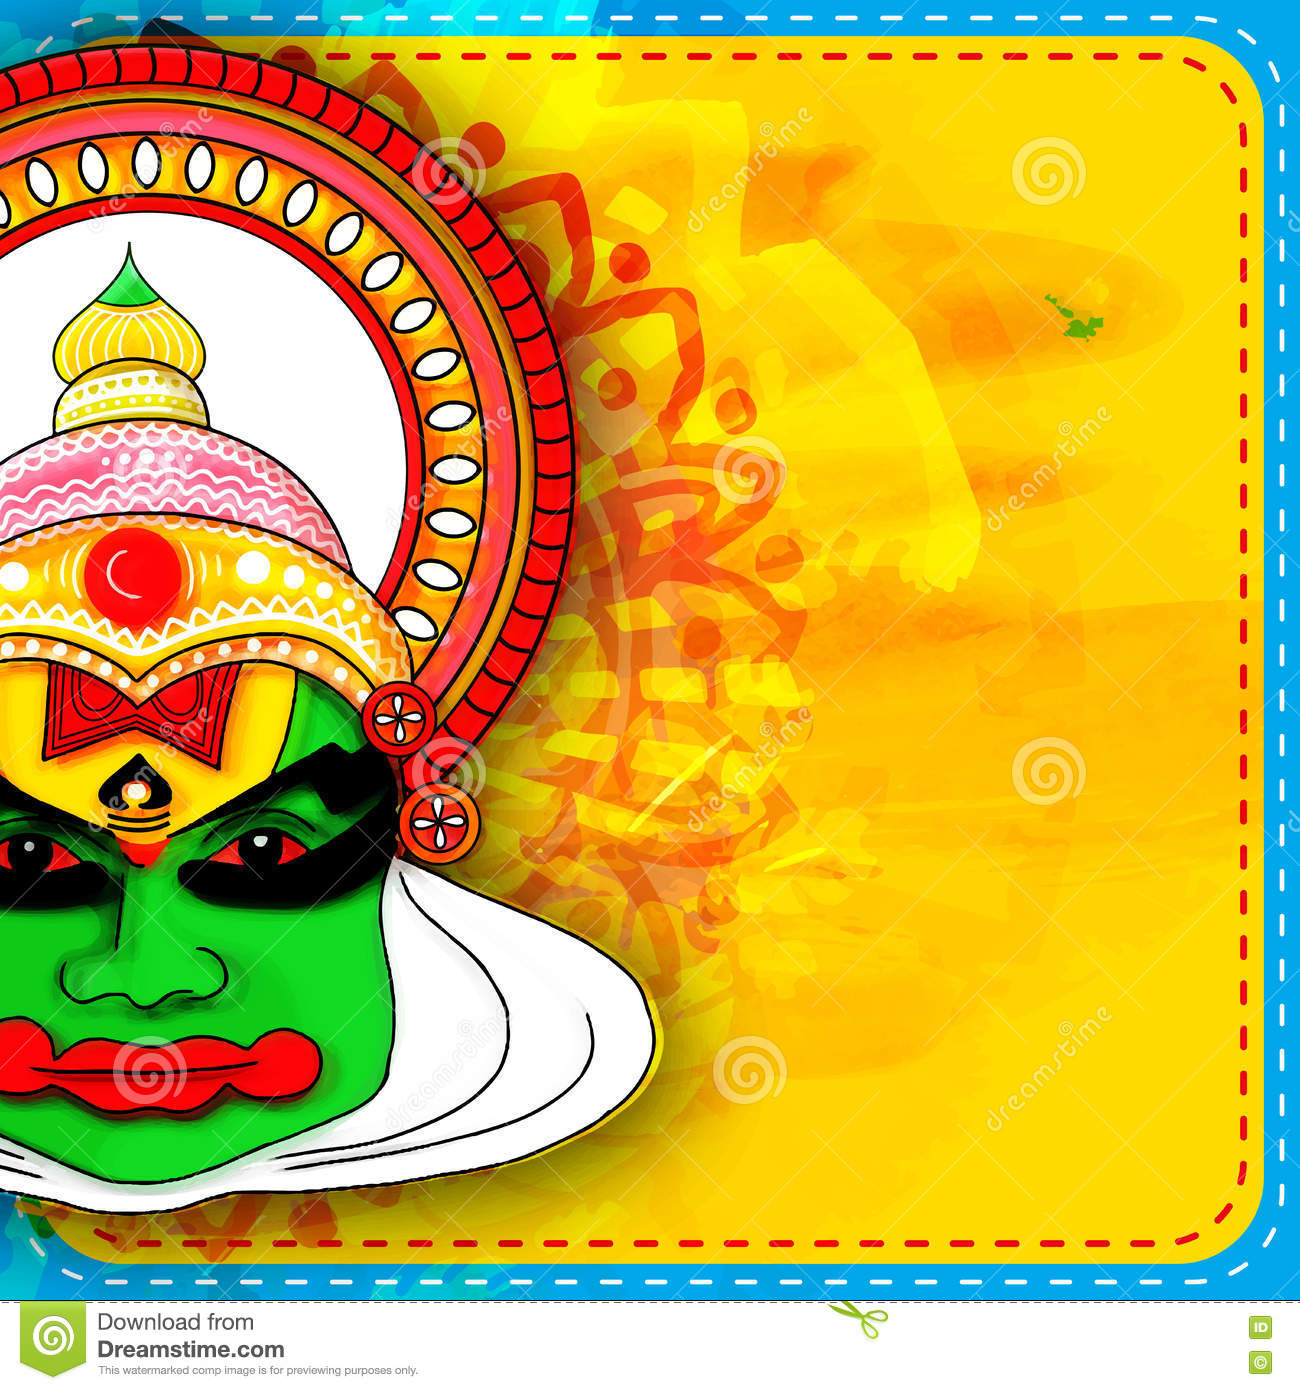 kathakali cartoons pictures illustrations - photo #17